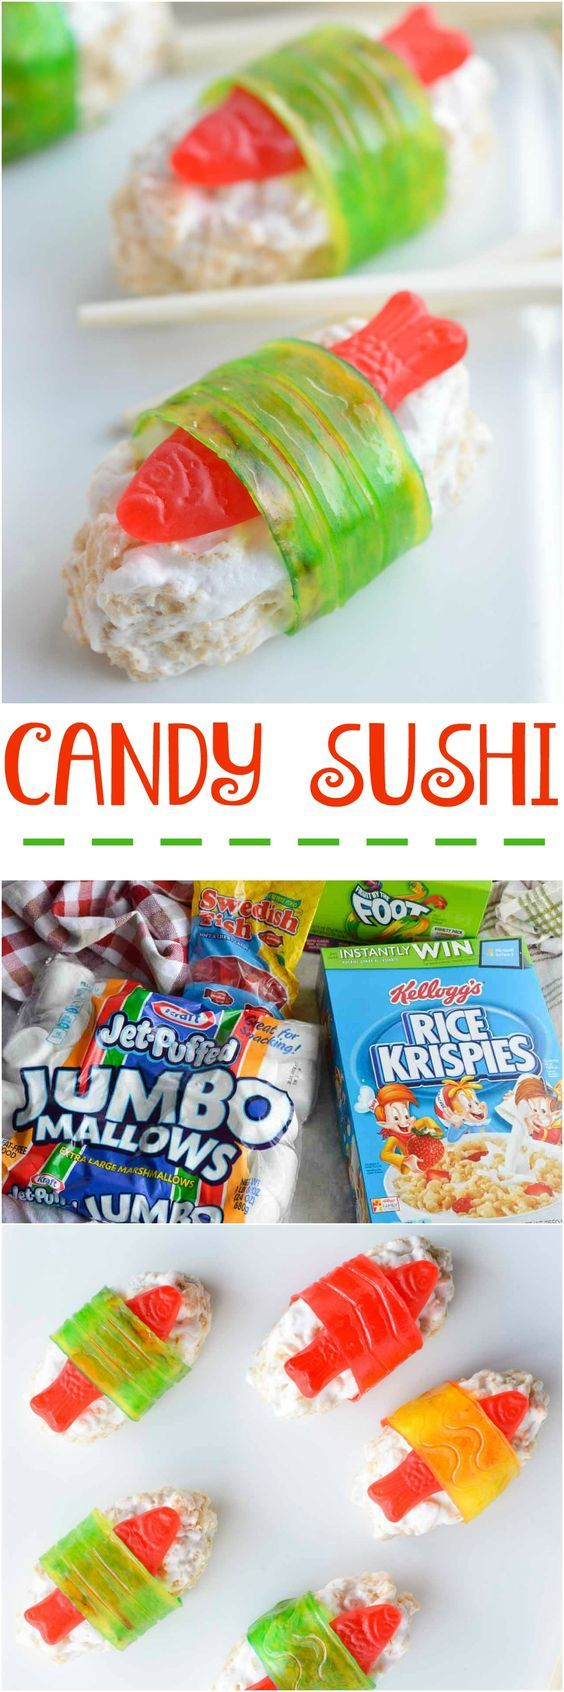 The kids will go crazy for this Candy Sushi! Made with rice crispy treats Swedish fish candy and fruit roll ups. This dessert sushi recipe is easy to make portable and great for parties.